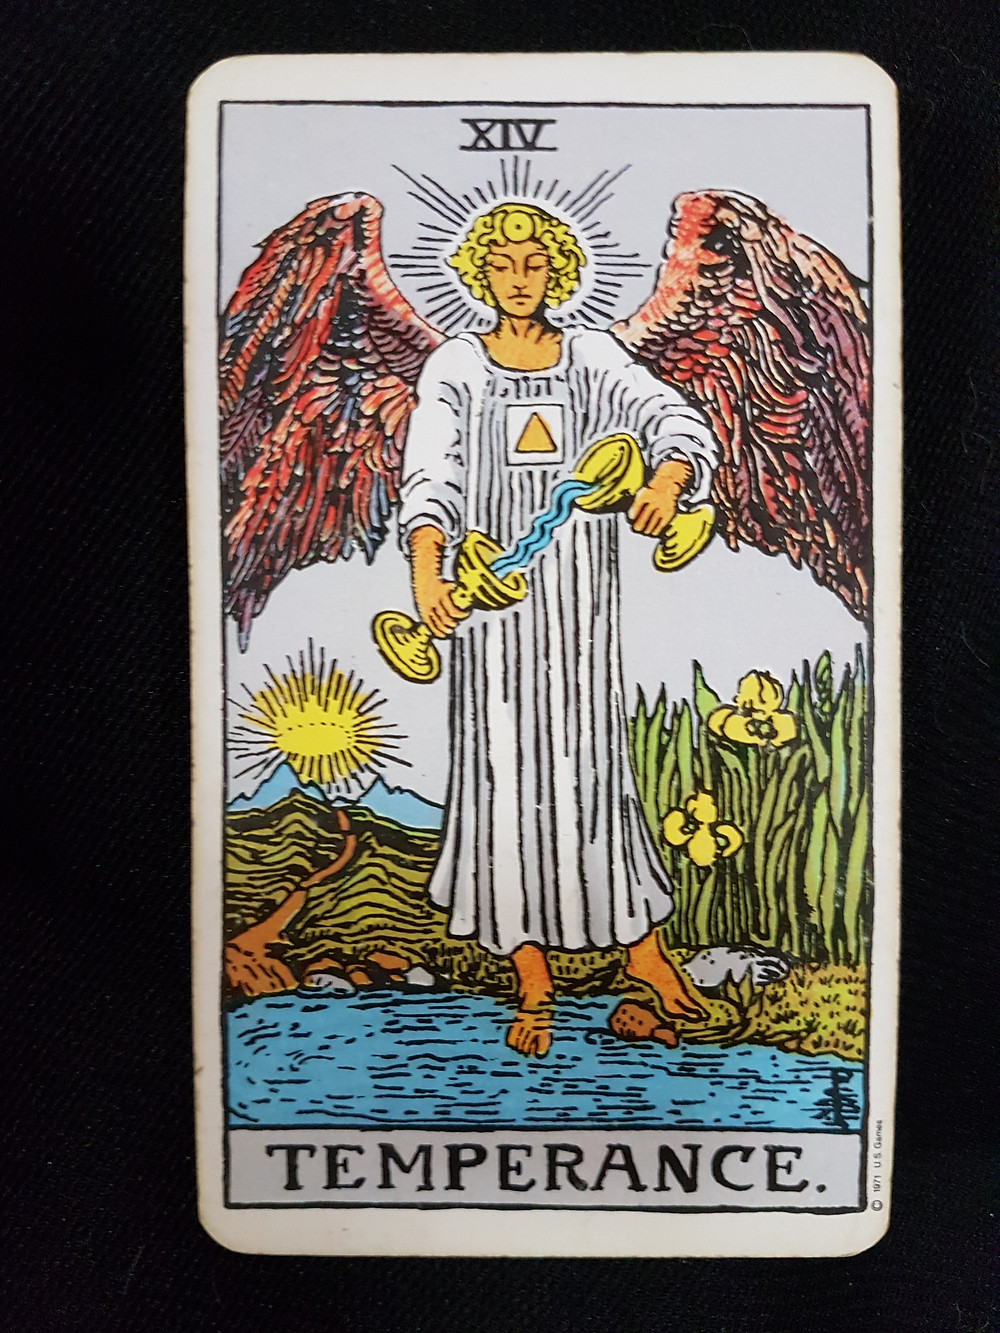 The Temperance Card No 14 | lynsreadings.com